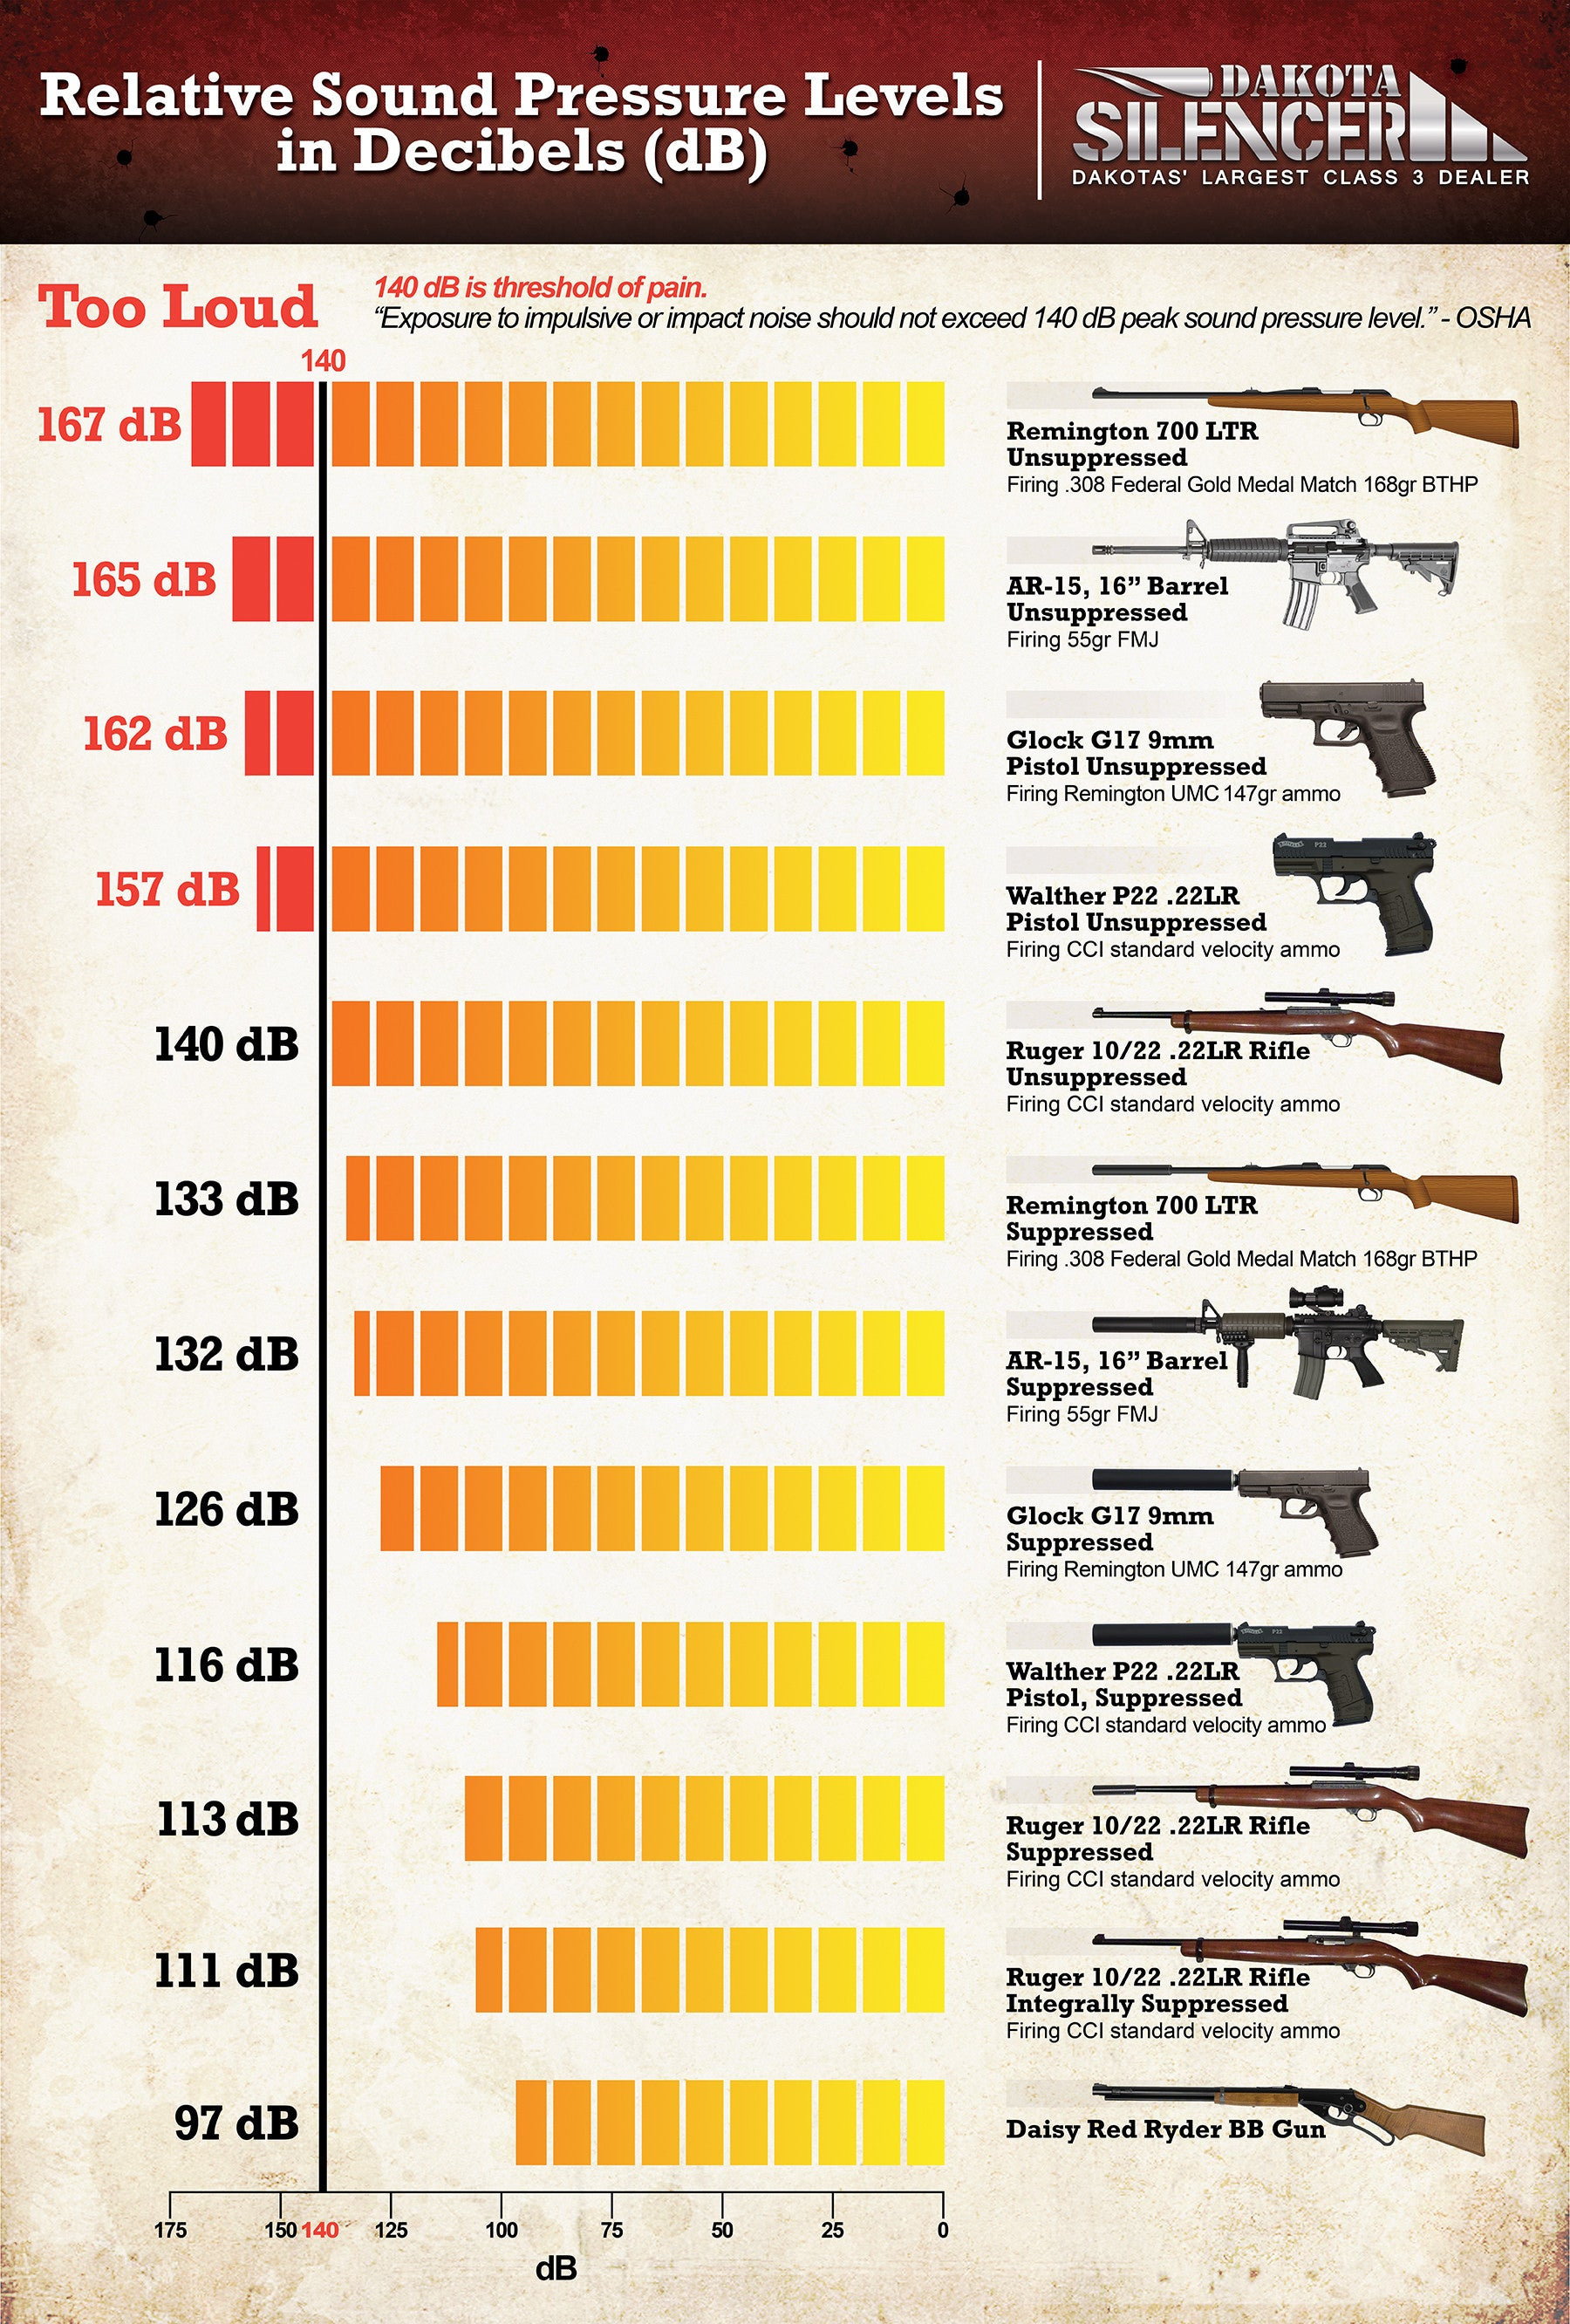 Relative Sound Pressure Levels in Decibels (dB) of Firearms